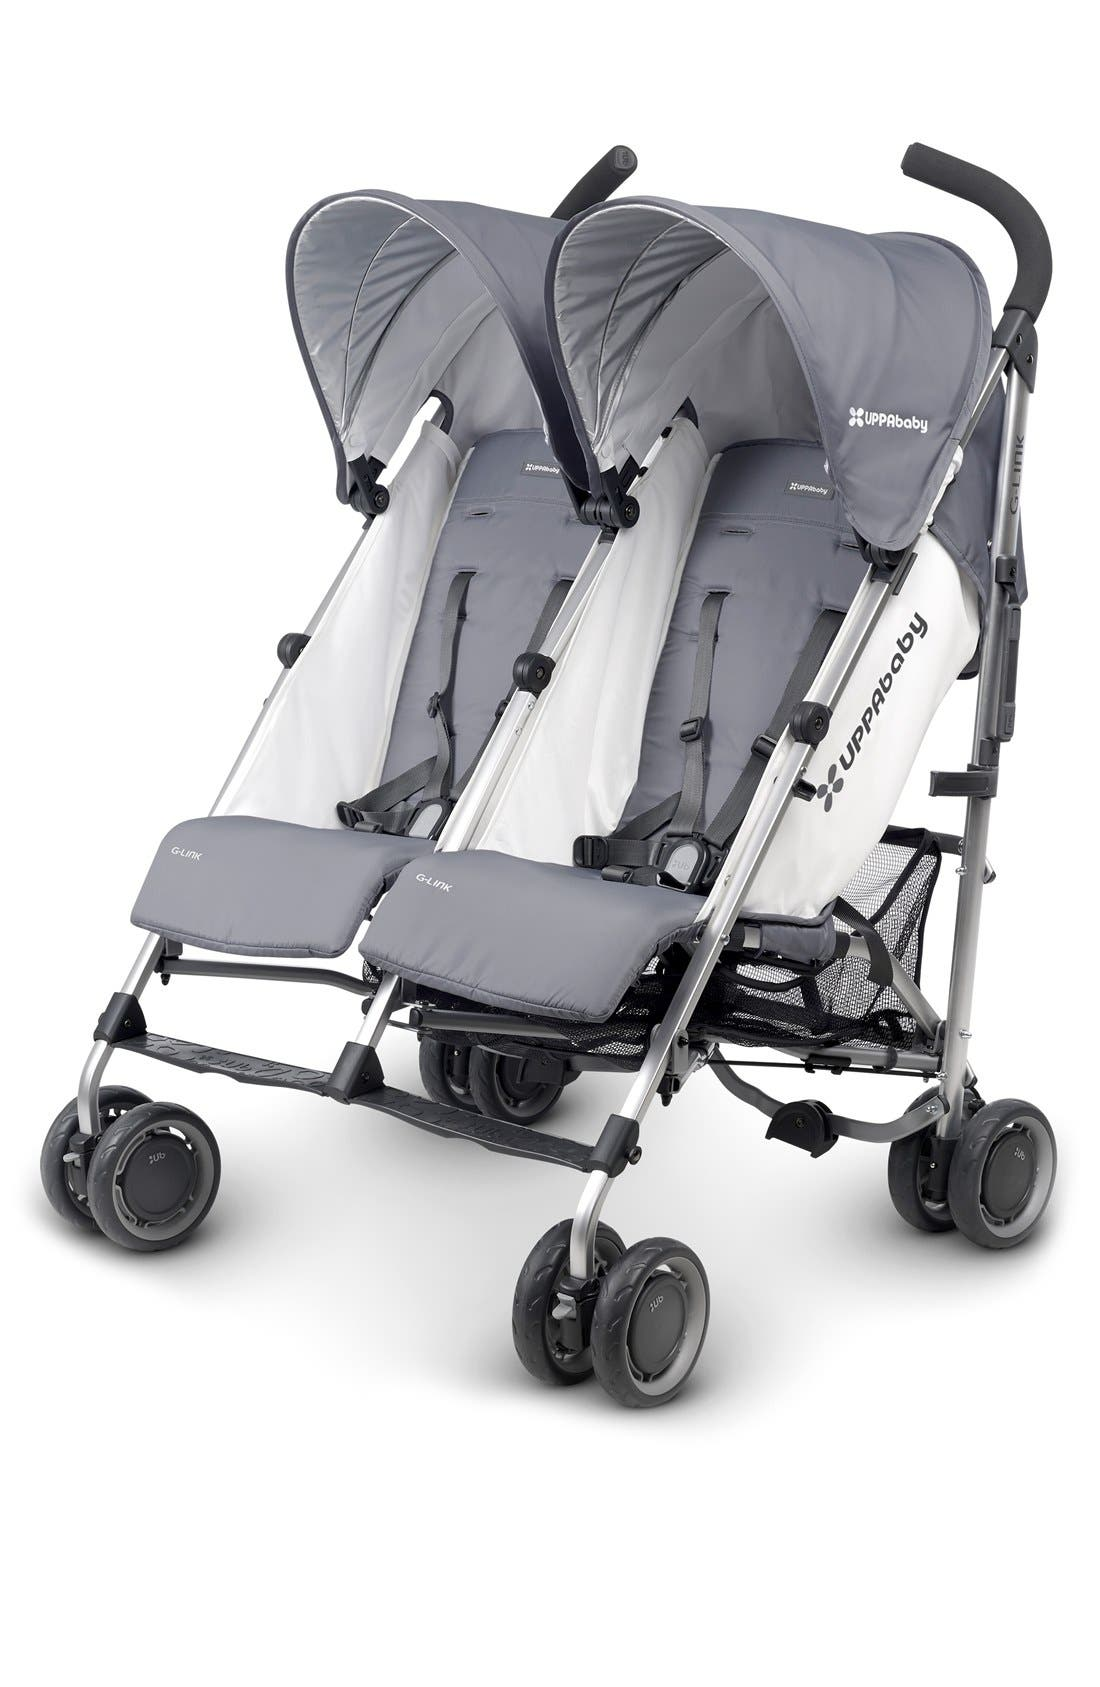 G-LINK Pascal Aluminum Frame Reclining Side by Side Umbrella Stroller,                             Main thumbnail 1, color,                             grey